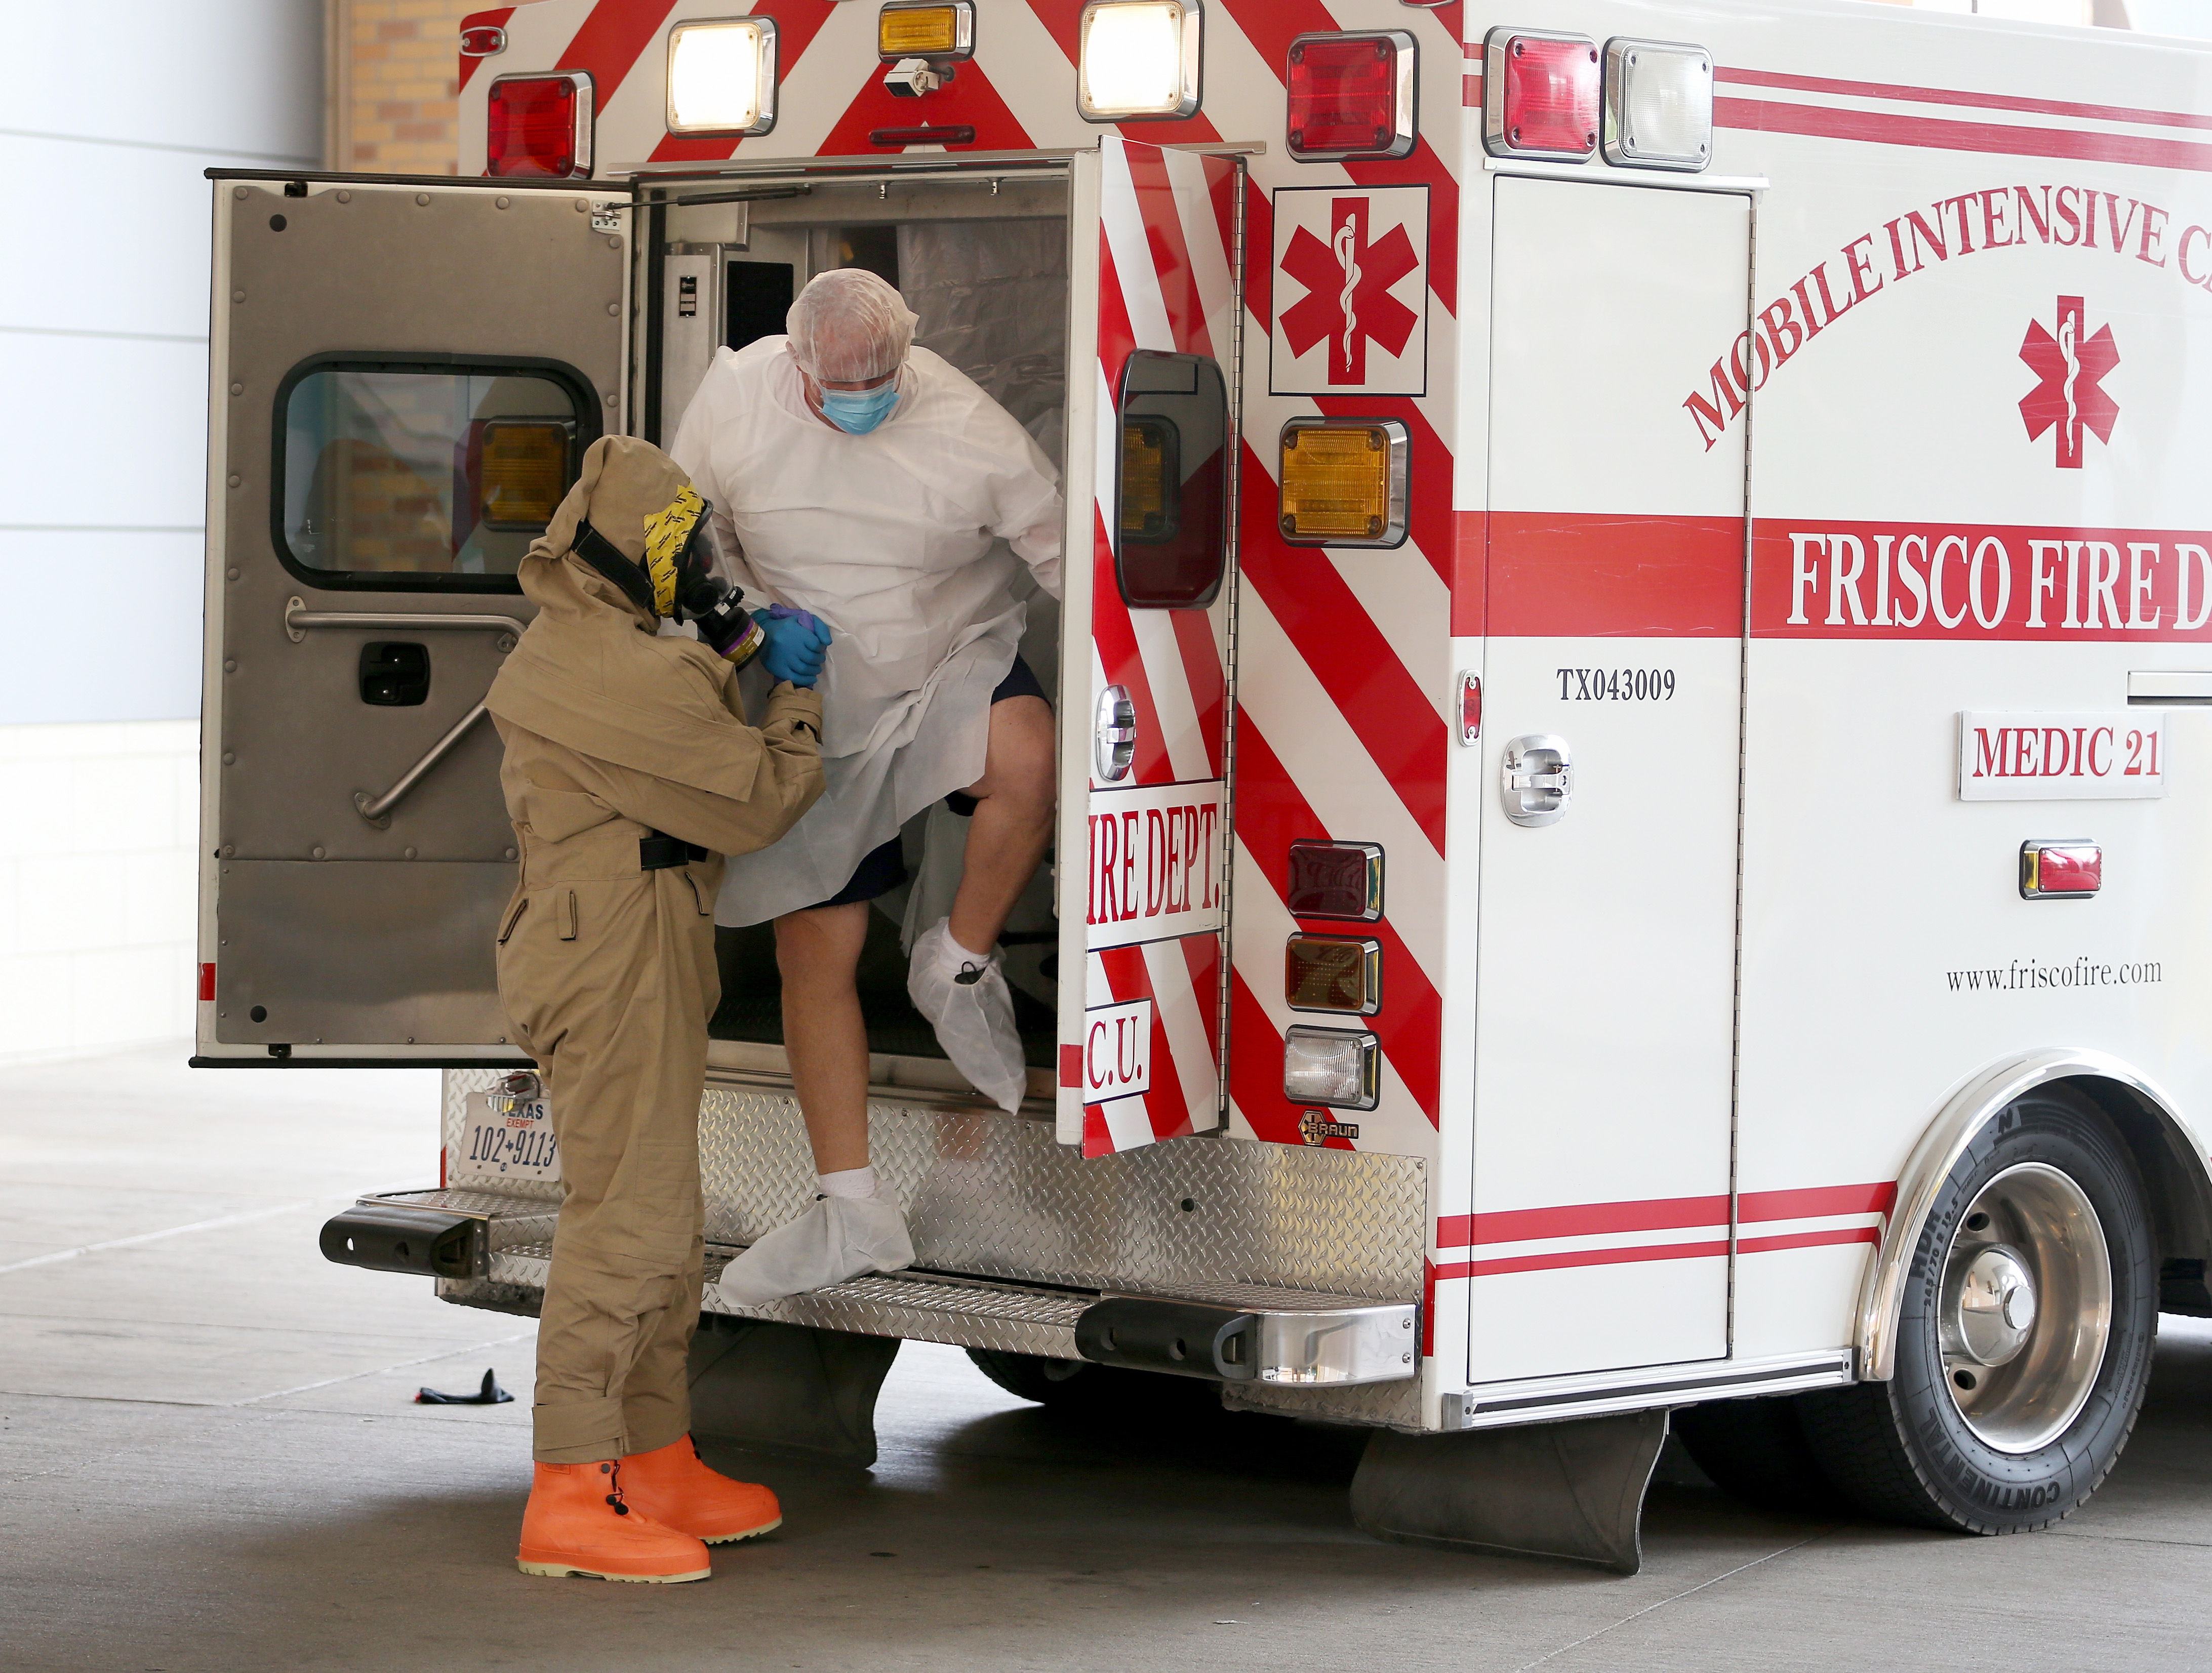 Dallas sheriff's deputy does not have Ebola, health officials say